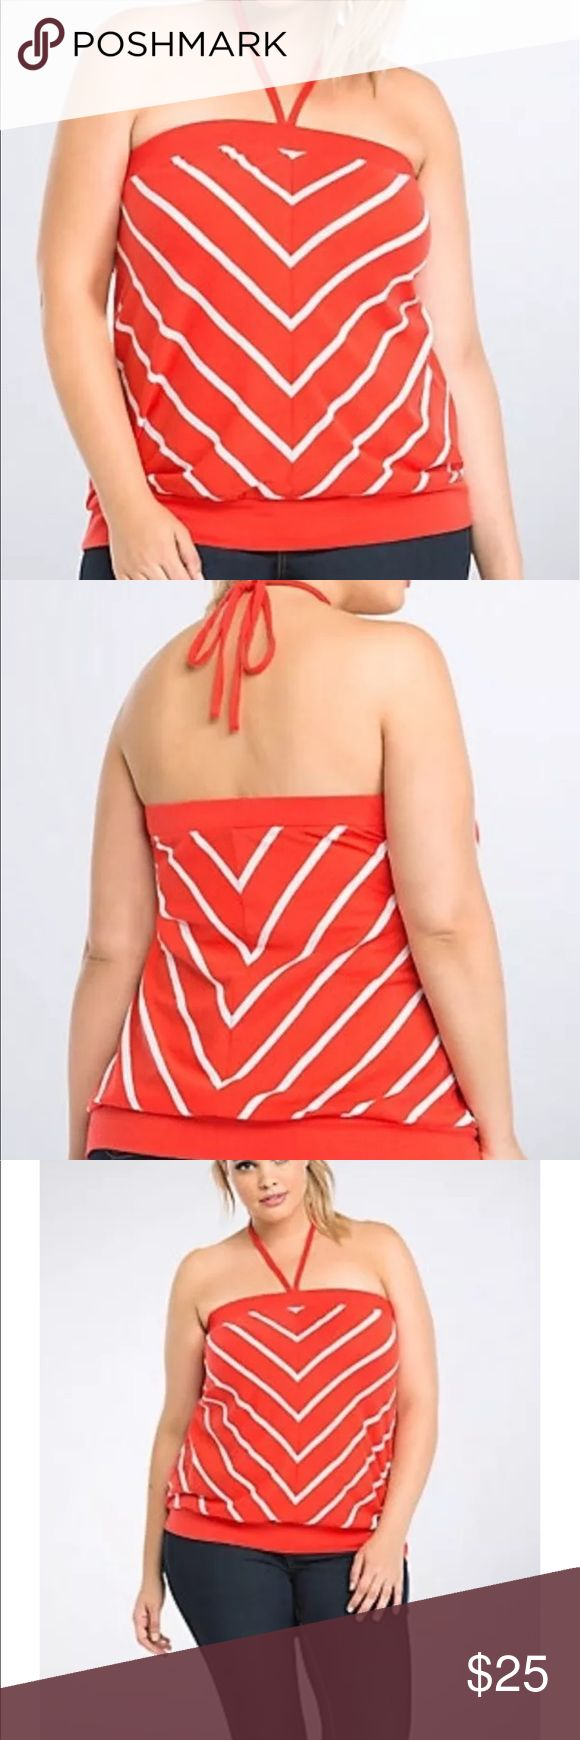 """NWT Torrid Striped Tube Top It's a cruel summer; don't be left on your own without a tube top! Cut with a breezy red knit and lined with eye-catching white stripes, the style can be tied into a makeshift halter; either way, your shoulders will stay sunkissed.  Model is 5'10"""", size 1 Size 1 measures 21 1/2' from center frontCottonWash cold, dry lowImported plus size top torrid Tops"""